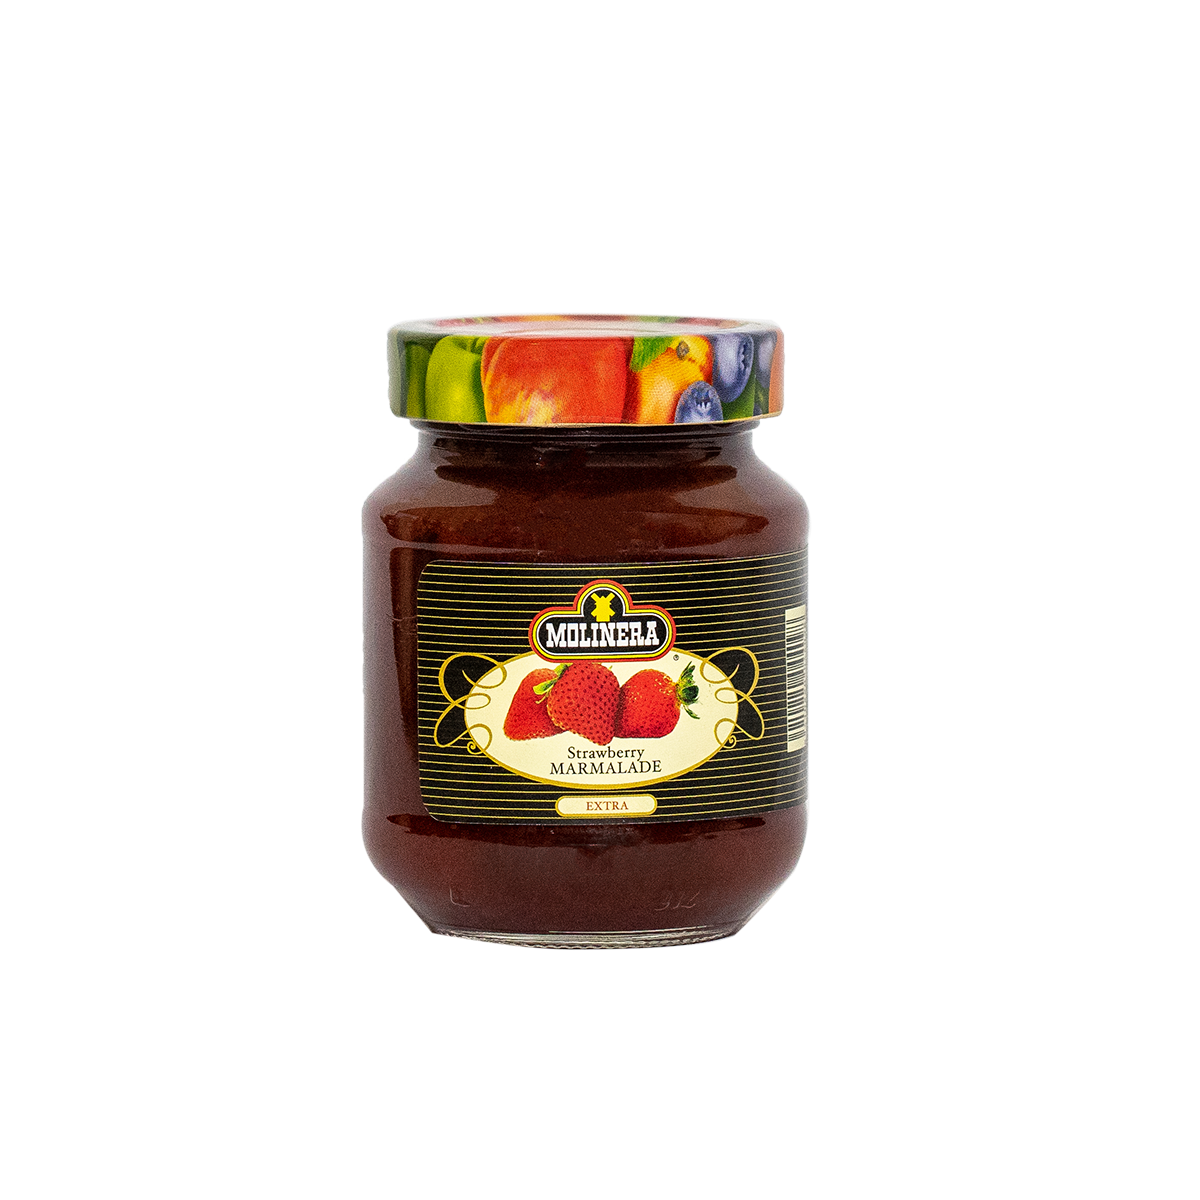 Molinera Strawberry Marmalade